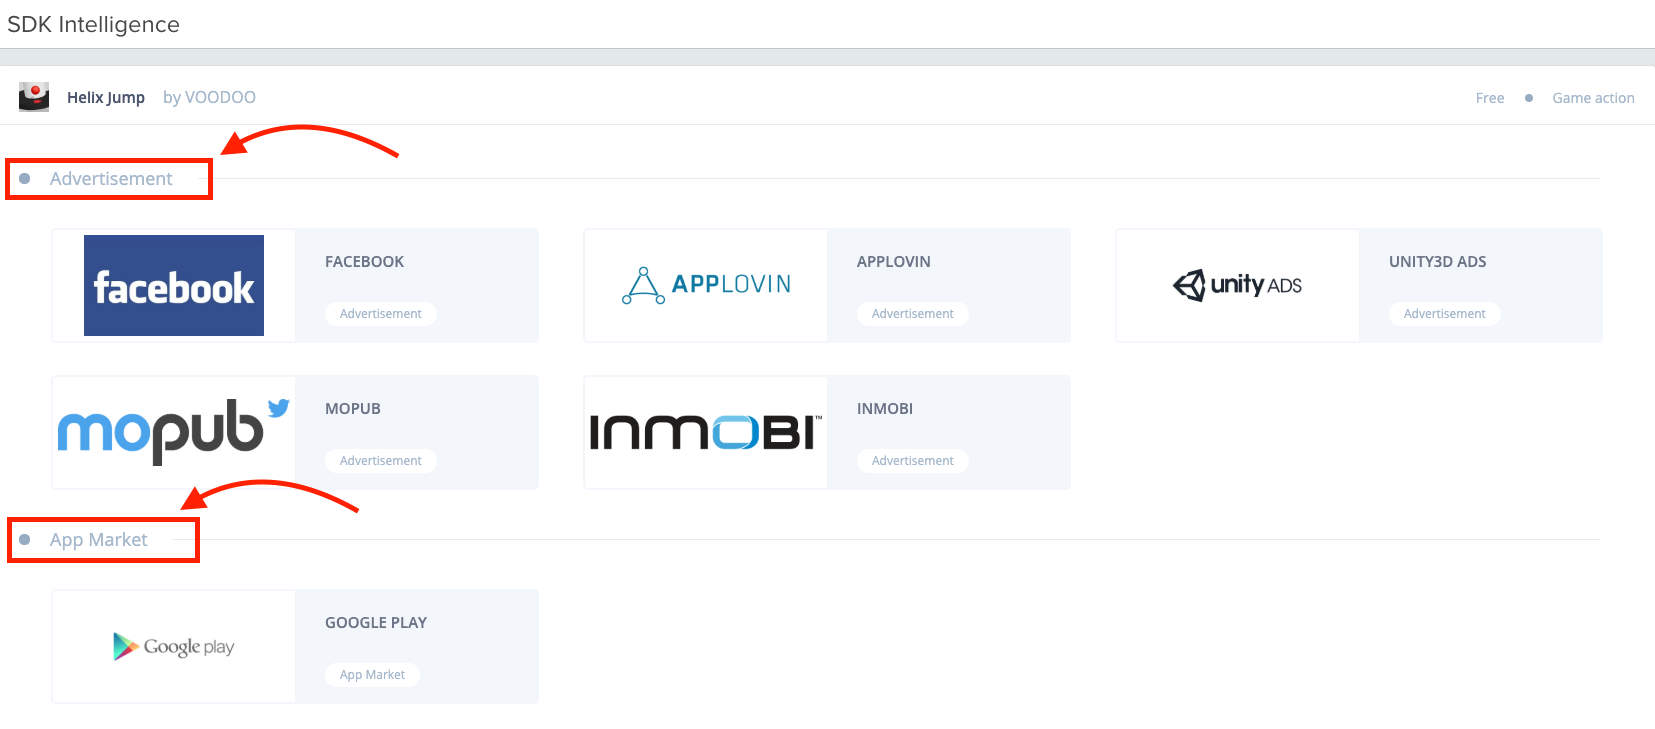 Product Update] SDK Intelligence is now available! - Mobile